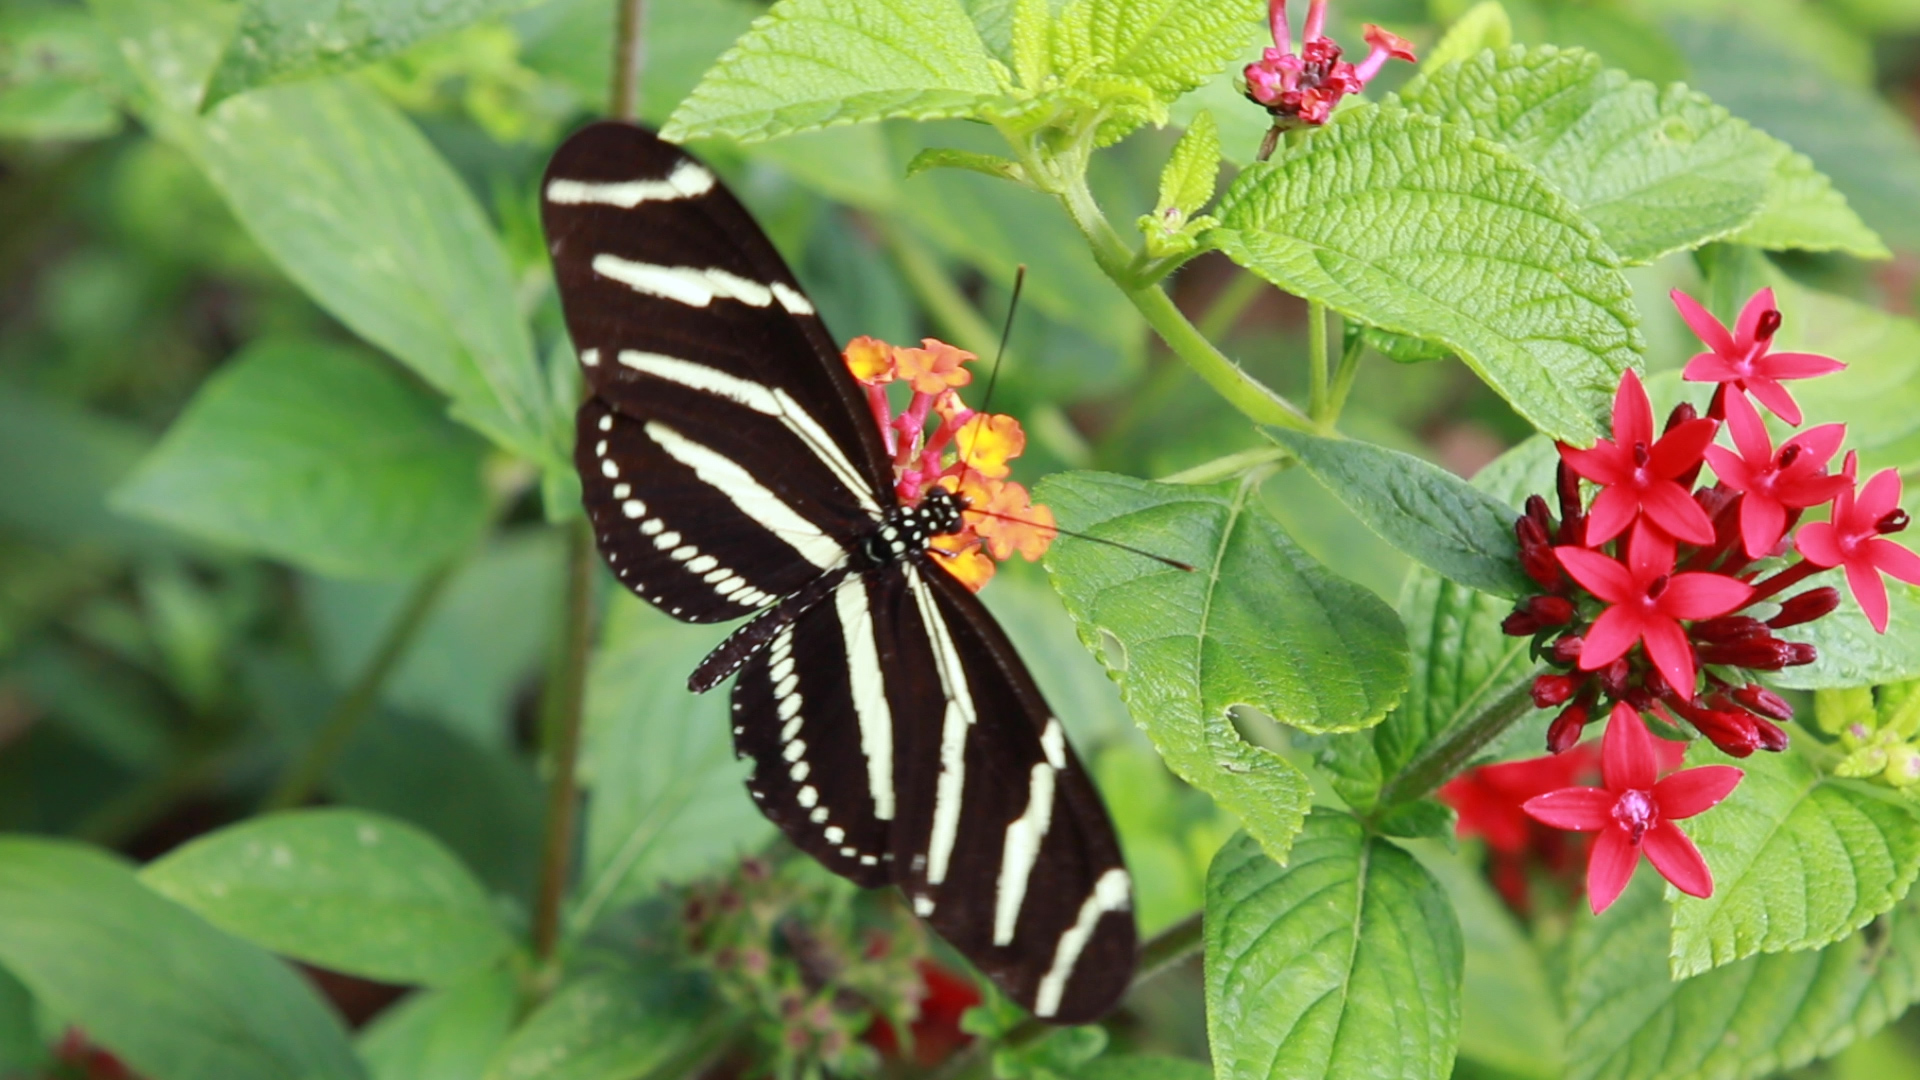 The Florida State Butterfly called the Zebra Longwing. Photo by: Justin Dalaba